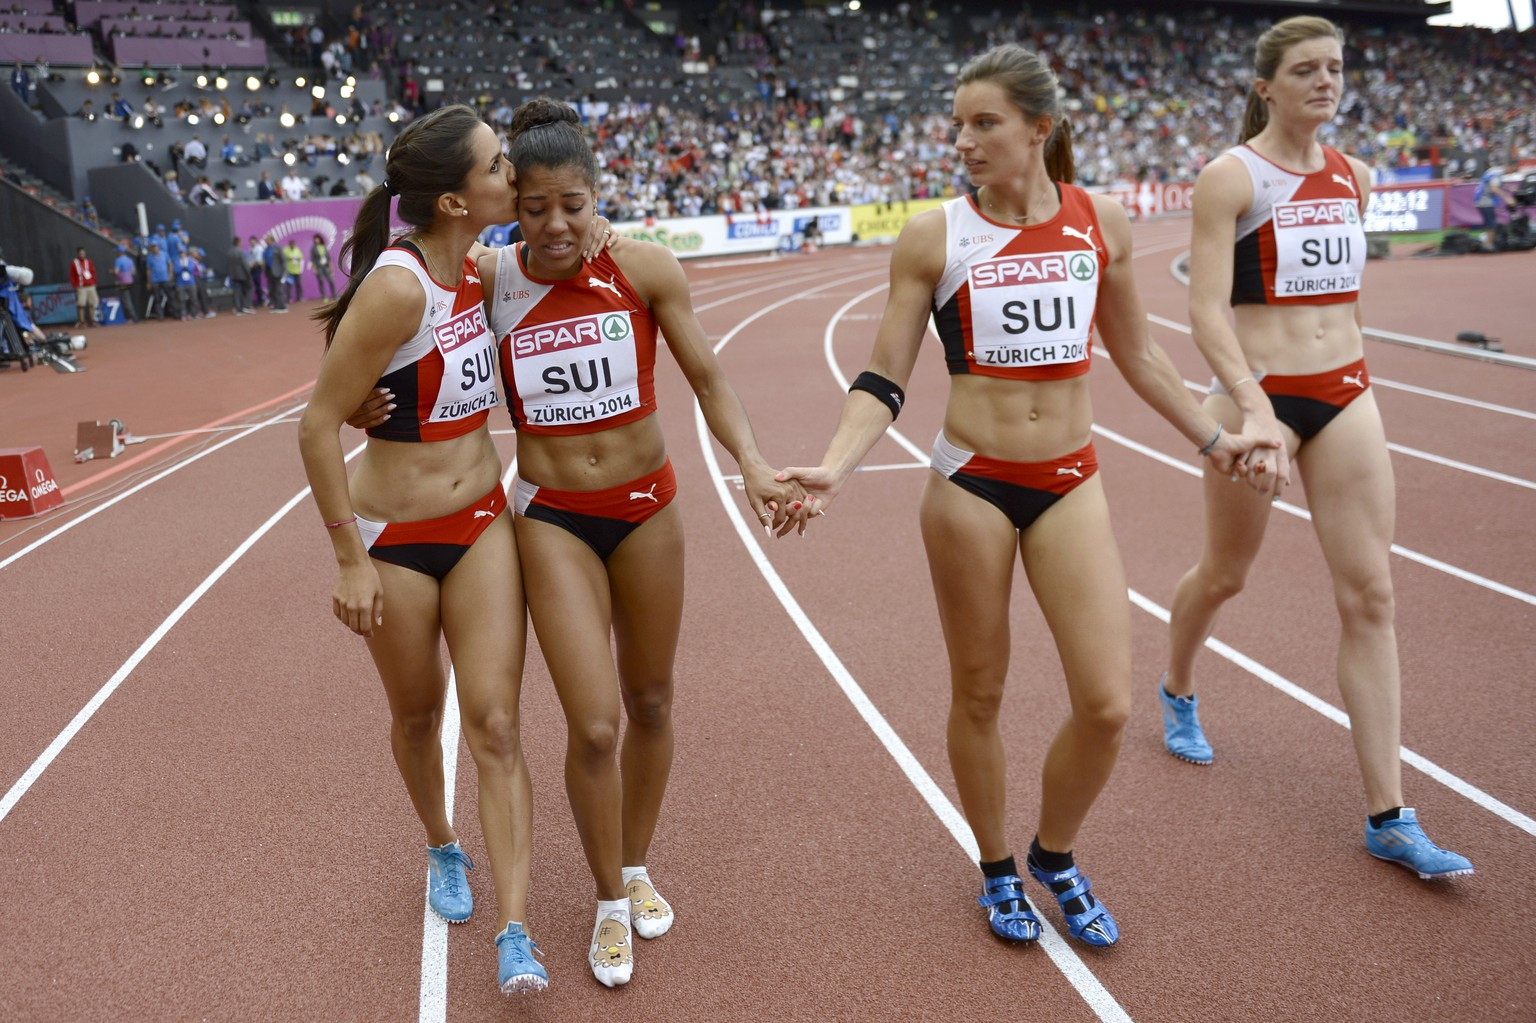 Switzerland's Marisa Lavanchy, Mujinga Kambundji, Ellen Sprunger and Lea Sprunger, from left to right, react after Kambundji lost the baton at the start of the women's 4x100m relay final, at the sixth day of the European Athletics Championships in the Letzigrund Stadium in Zurich, Switzerland, Sunday, August 17, 2014. (KEYSTONE/Jean-Christophe Bott)